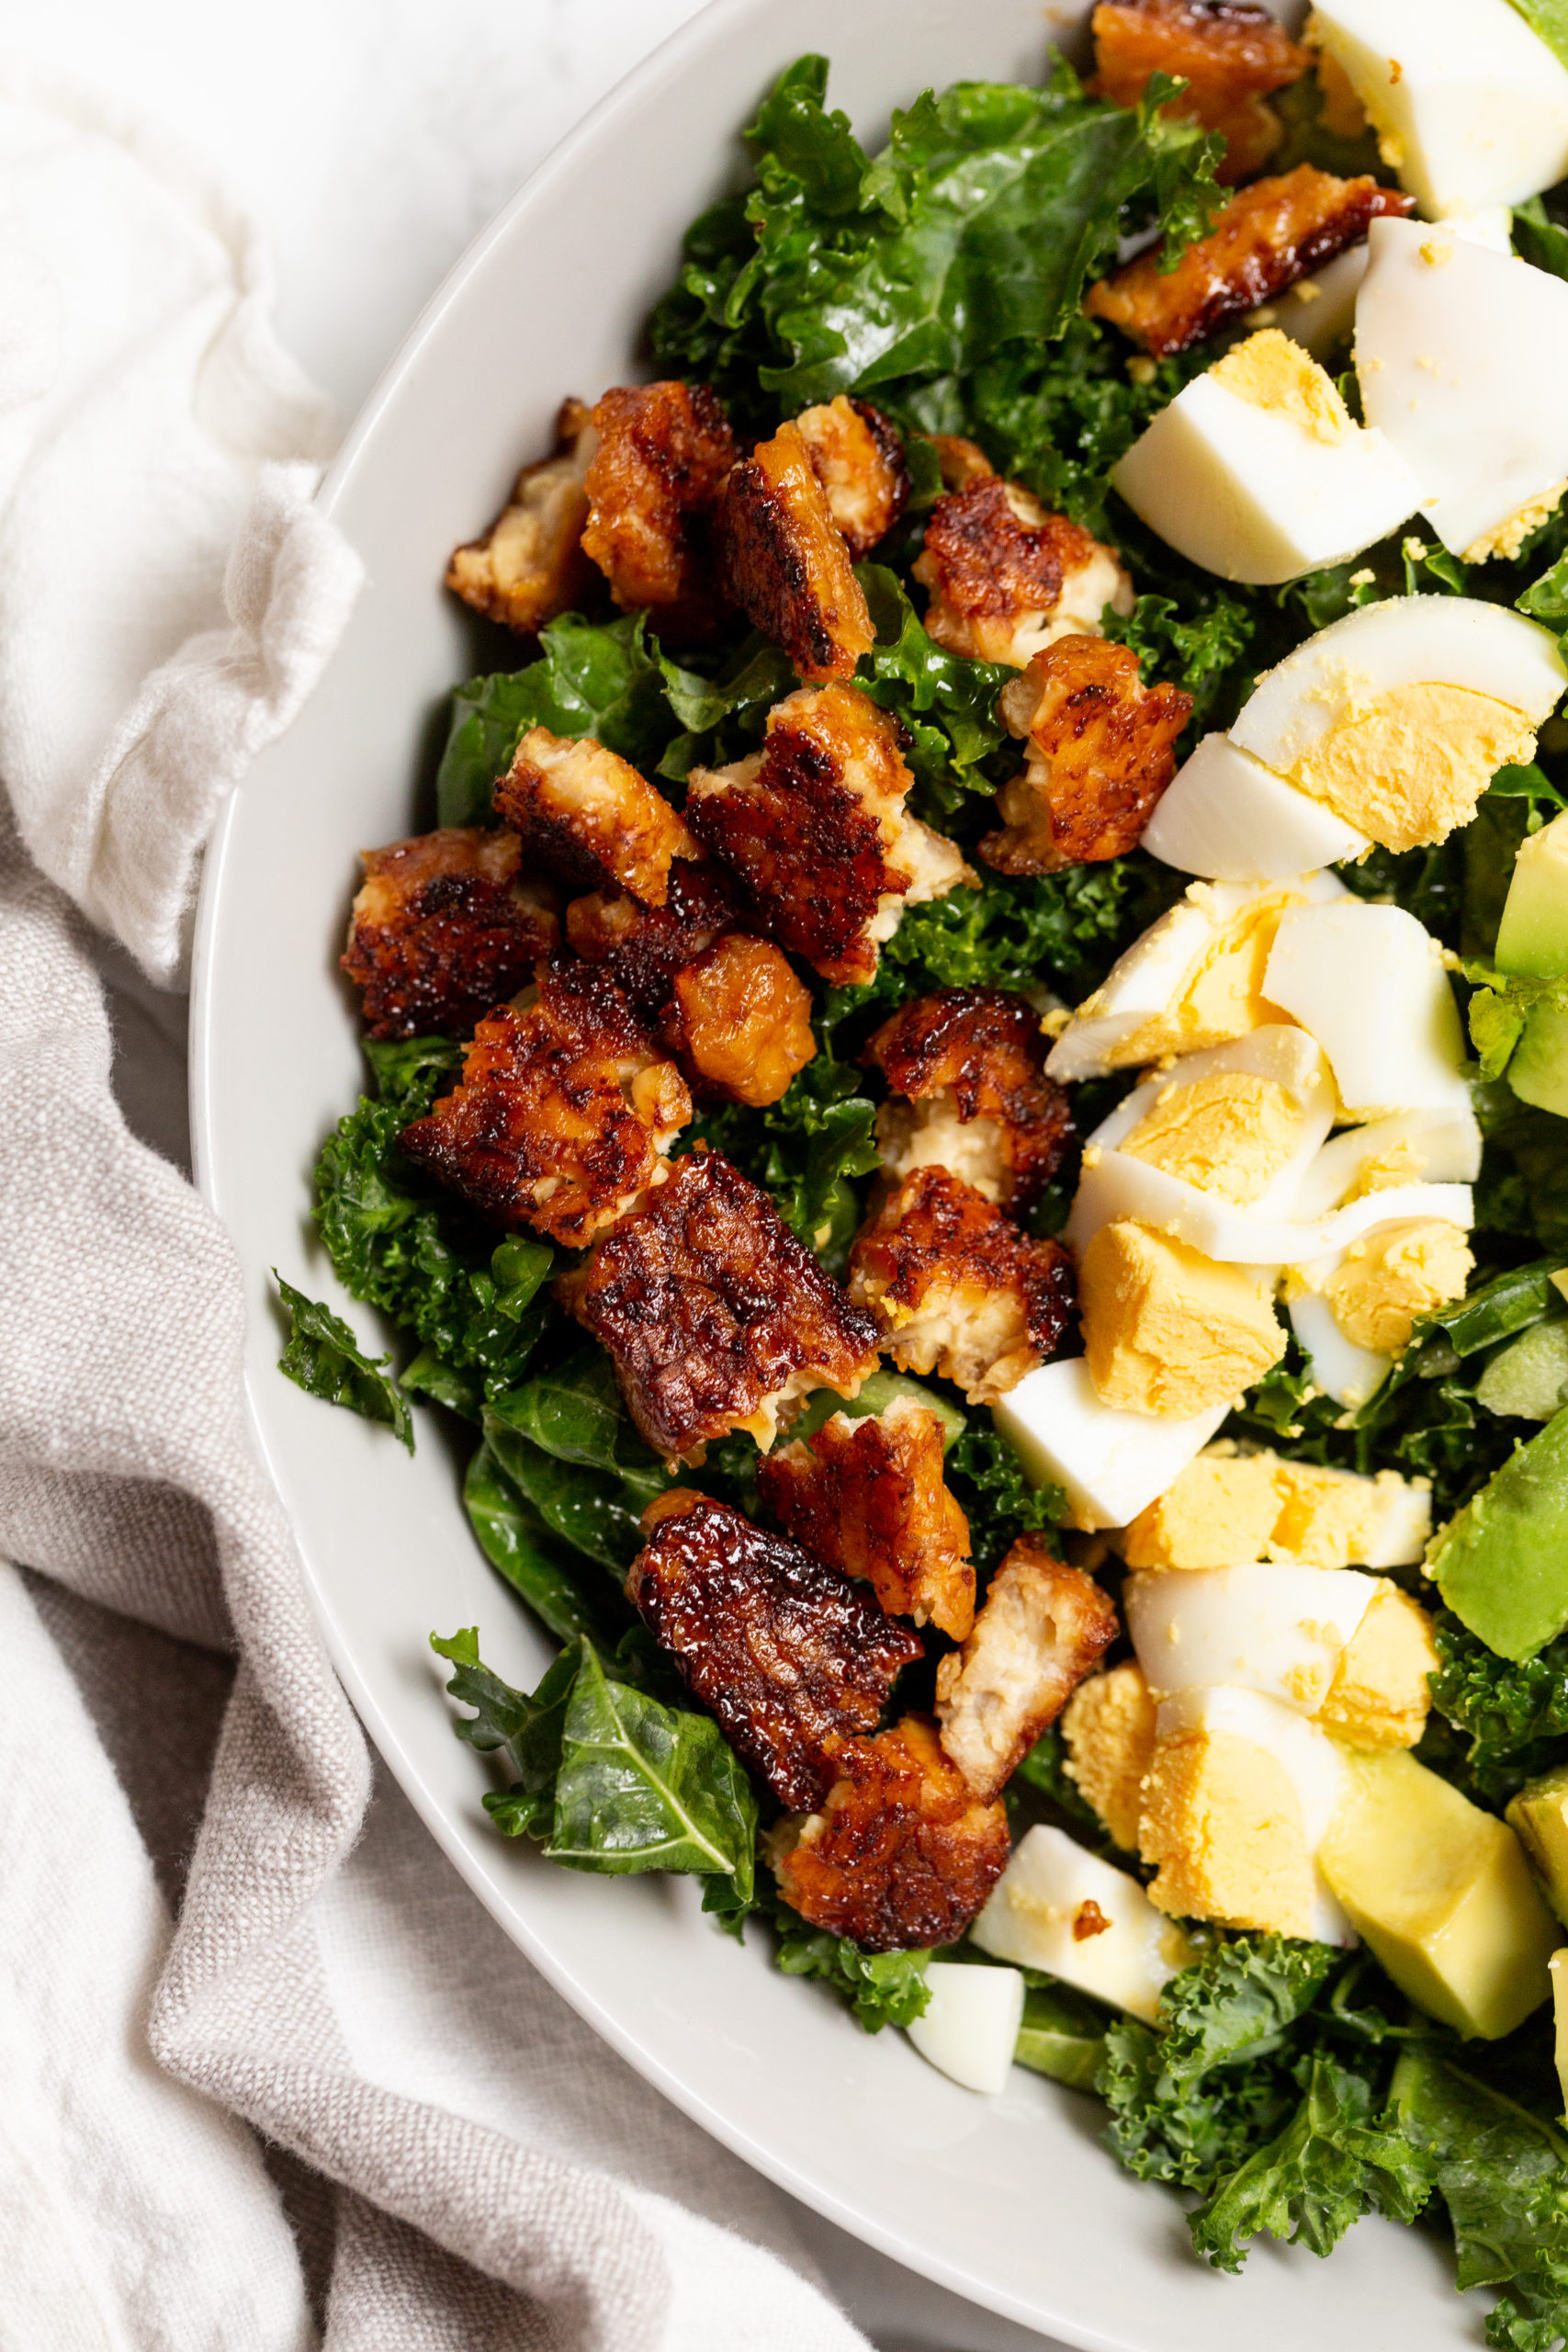 Autumn Cobb Salad with Tempeh Bacon